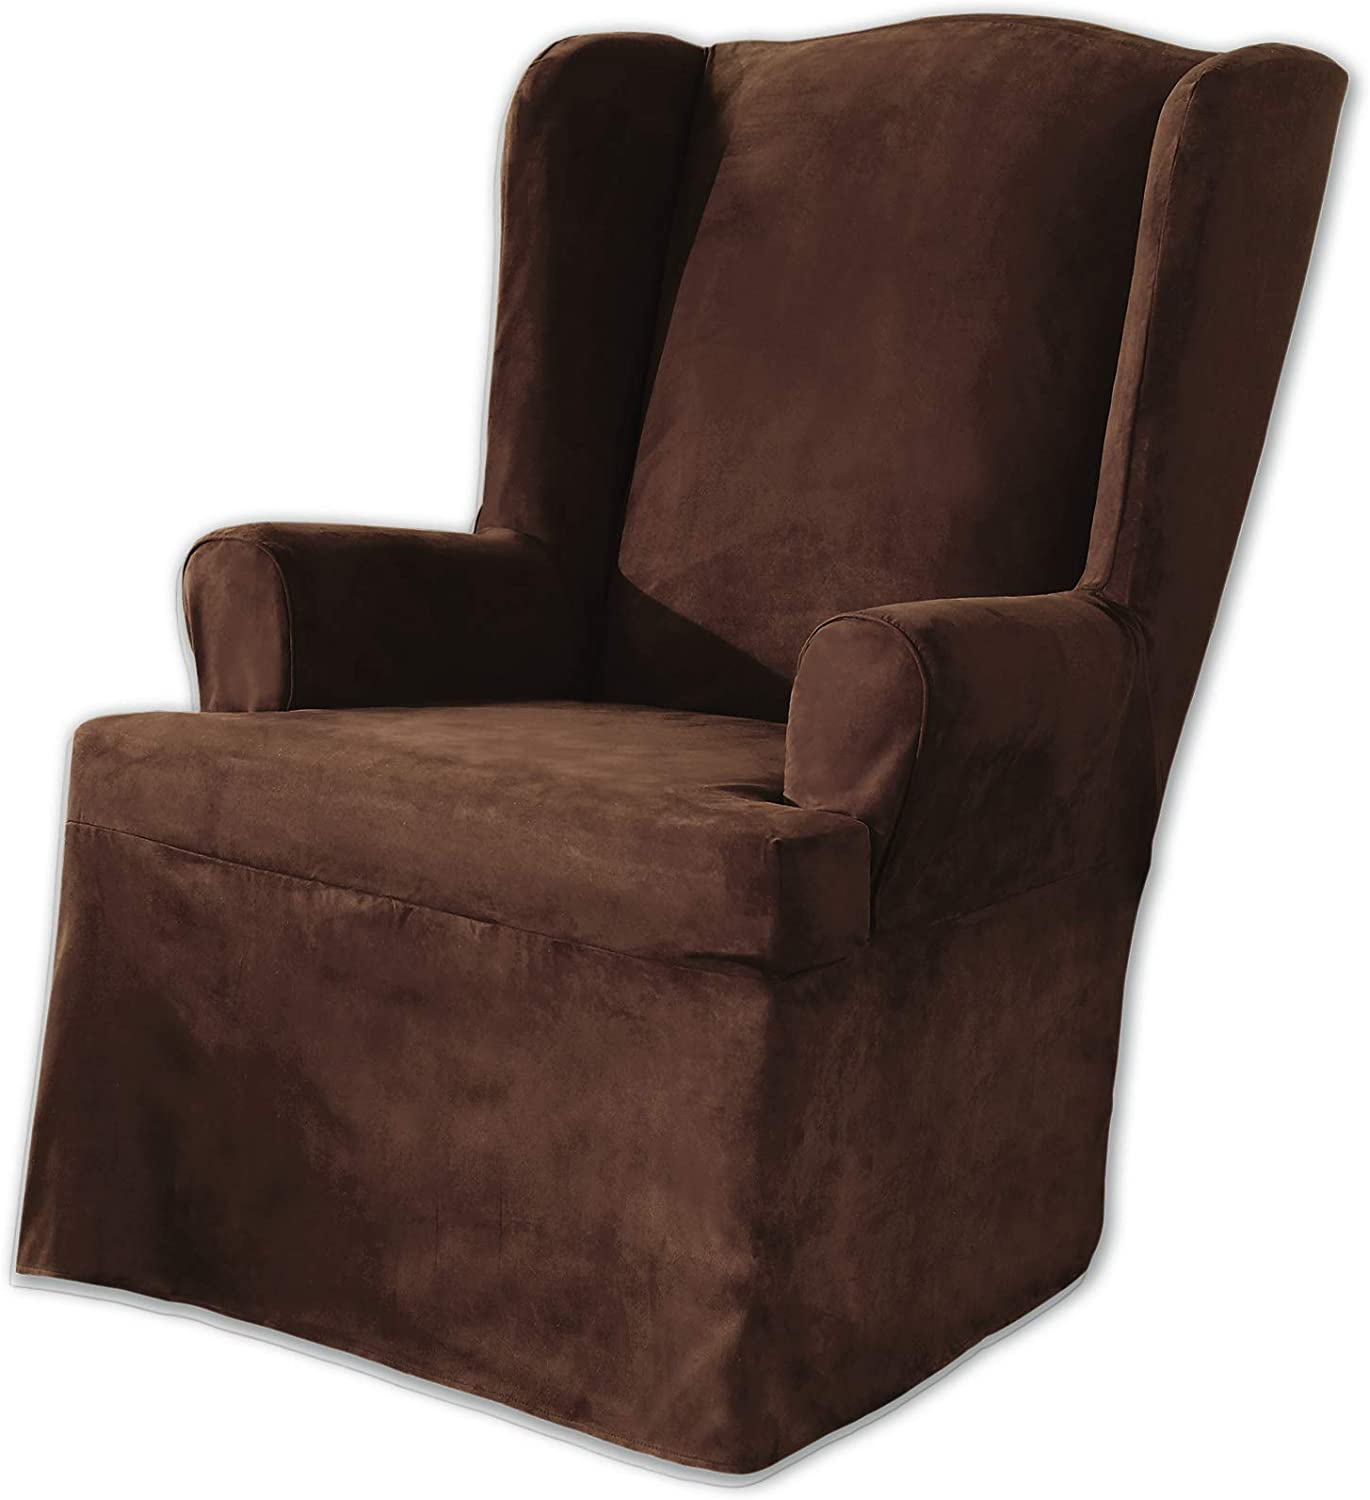 Sure Fit Soft Suede T-Cushion Wing Chair One Piece Slipcover, Relaxed Fit, Polyester, Machine Washable, Chocolate Color